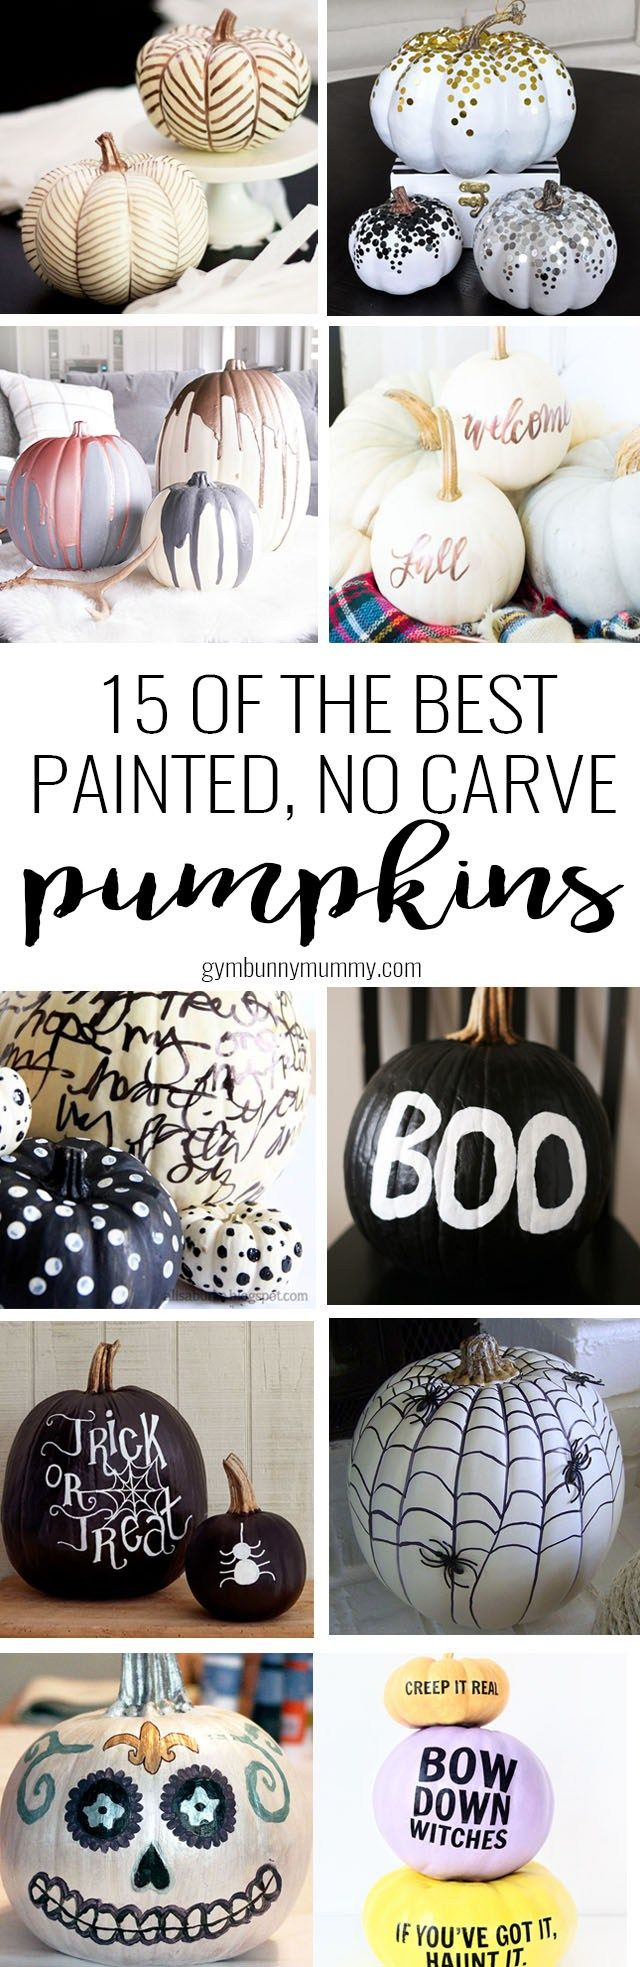 15 of the best hand painted, no carve pumpkin ideas